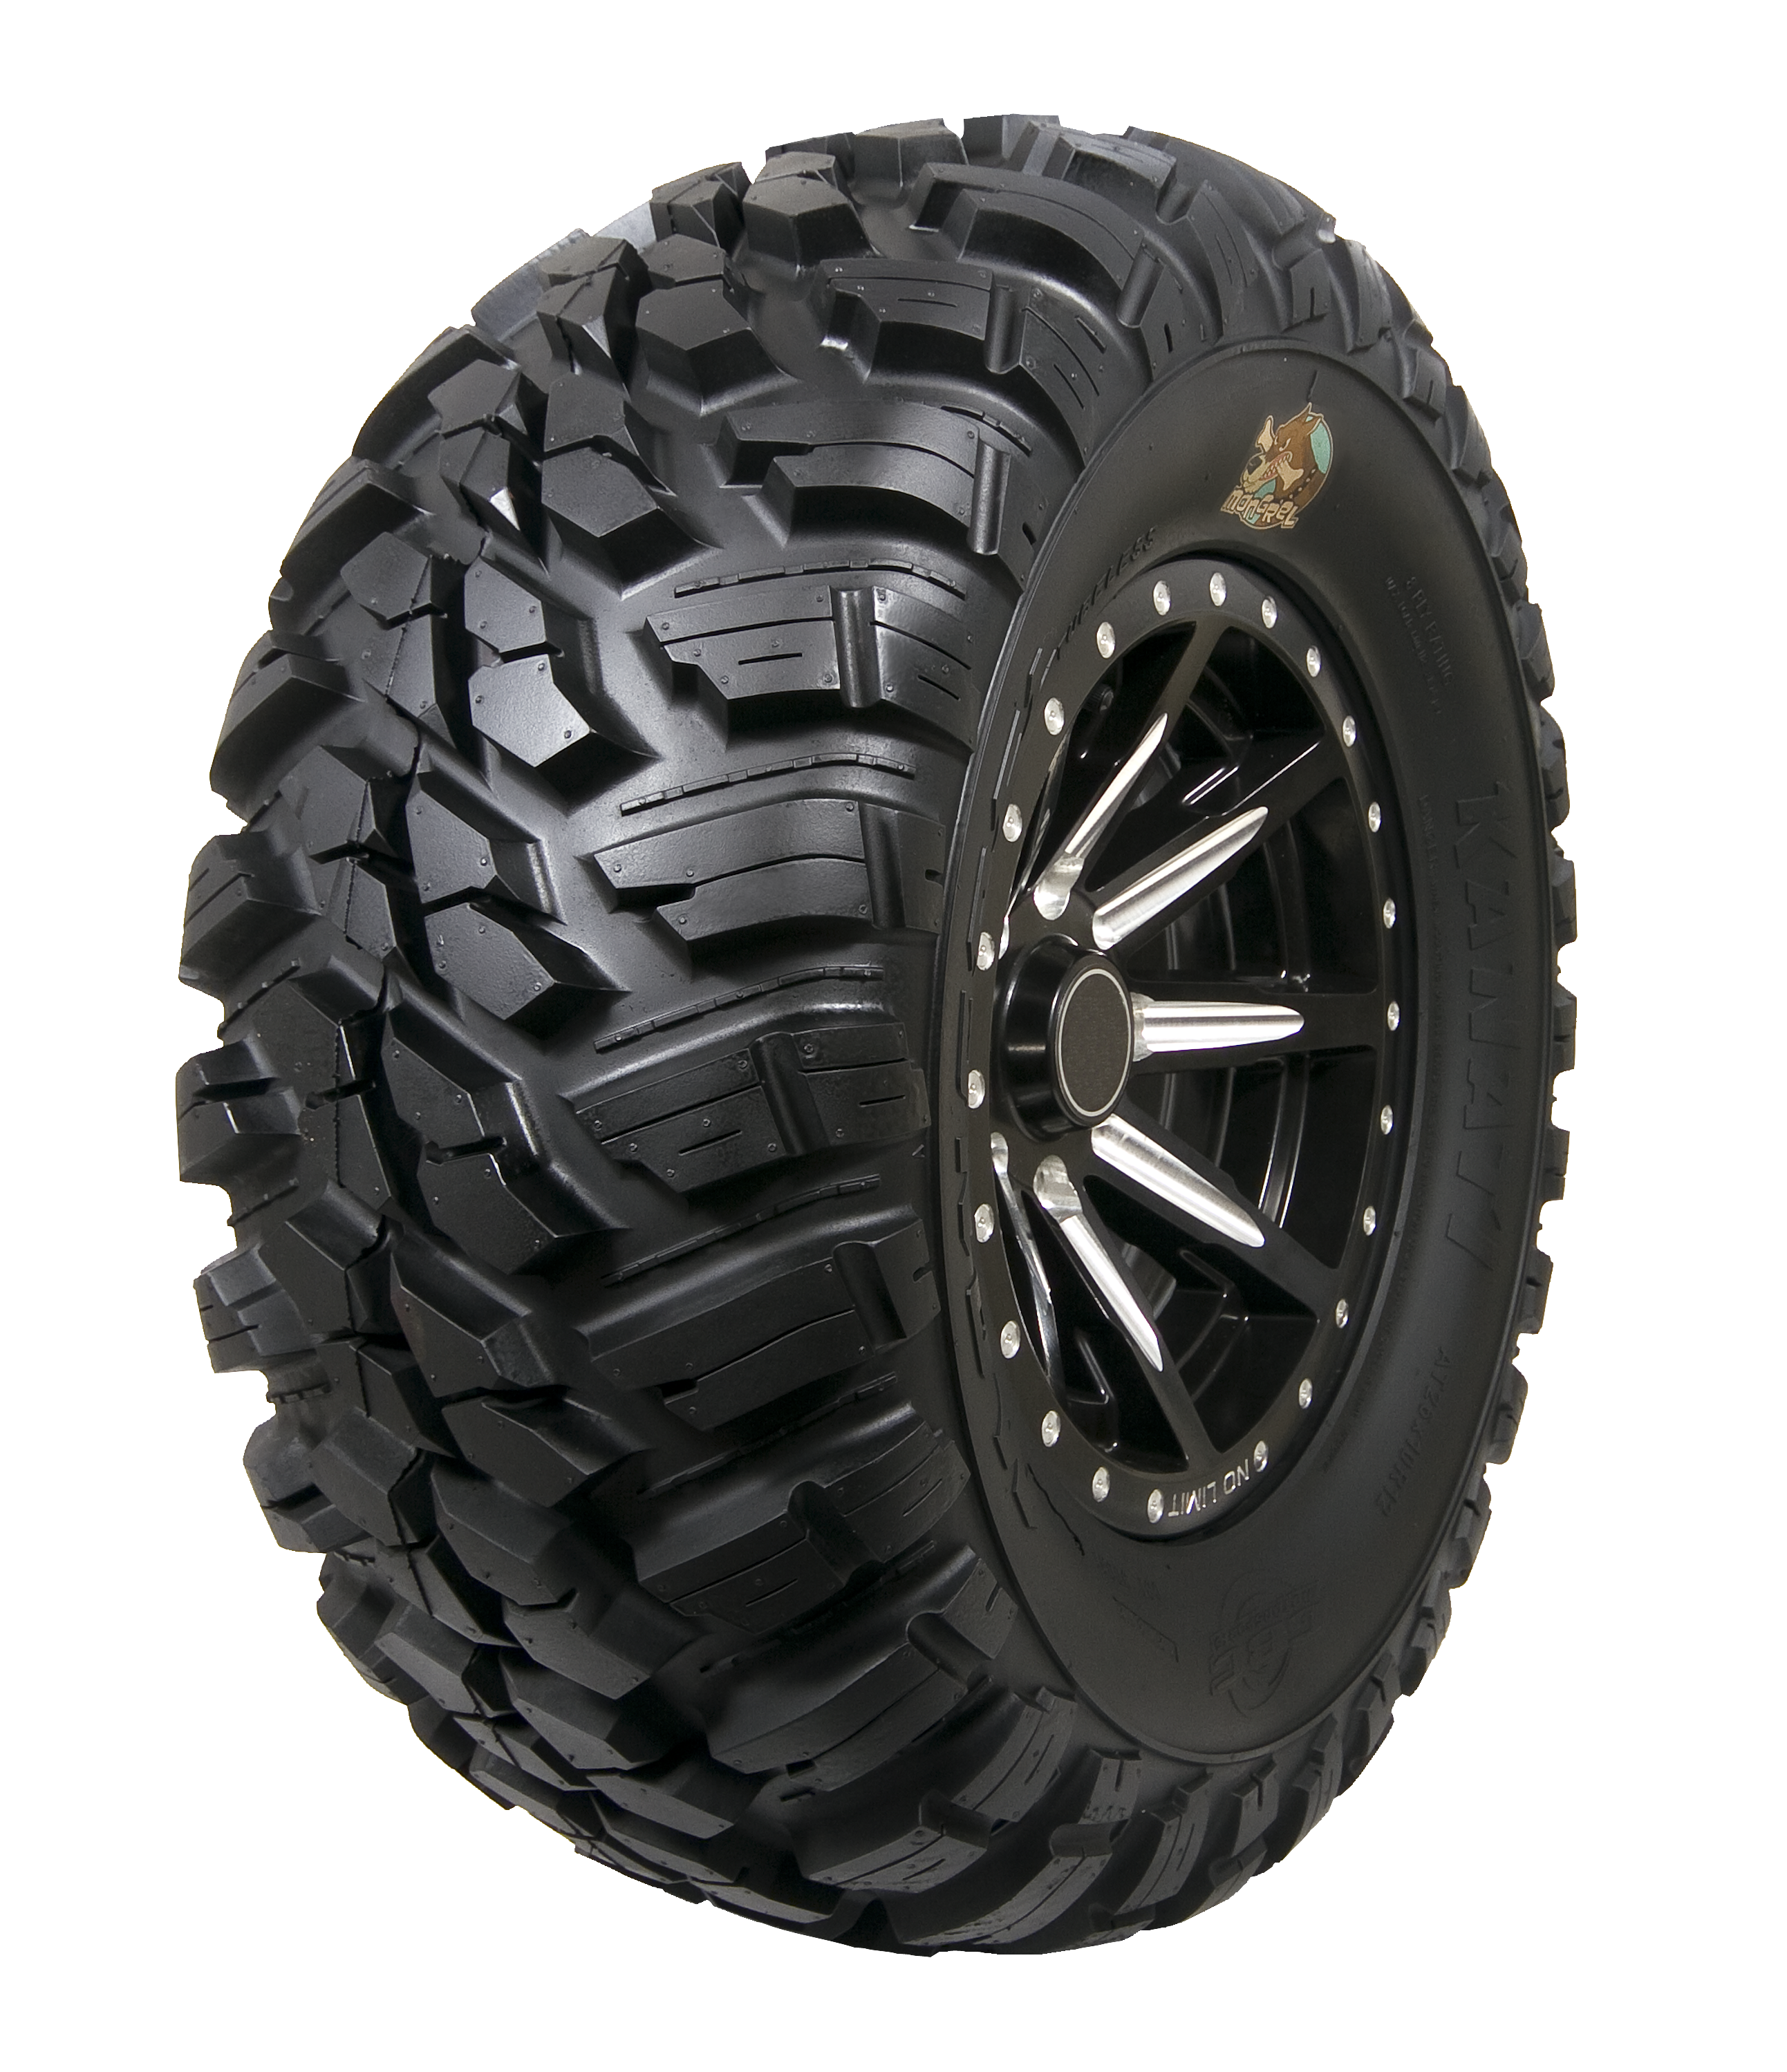 Countrywide increases ATV tire selection